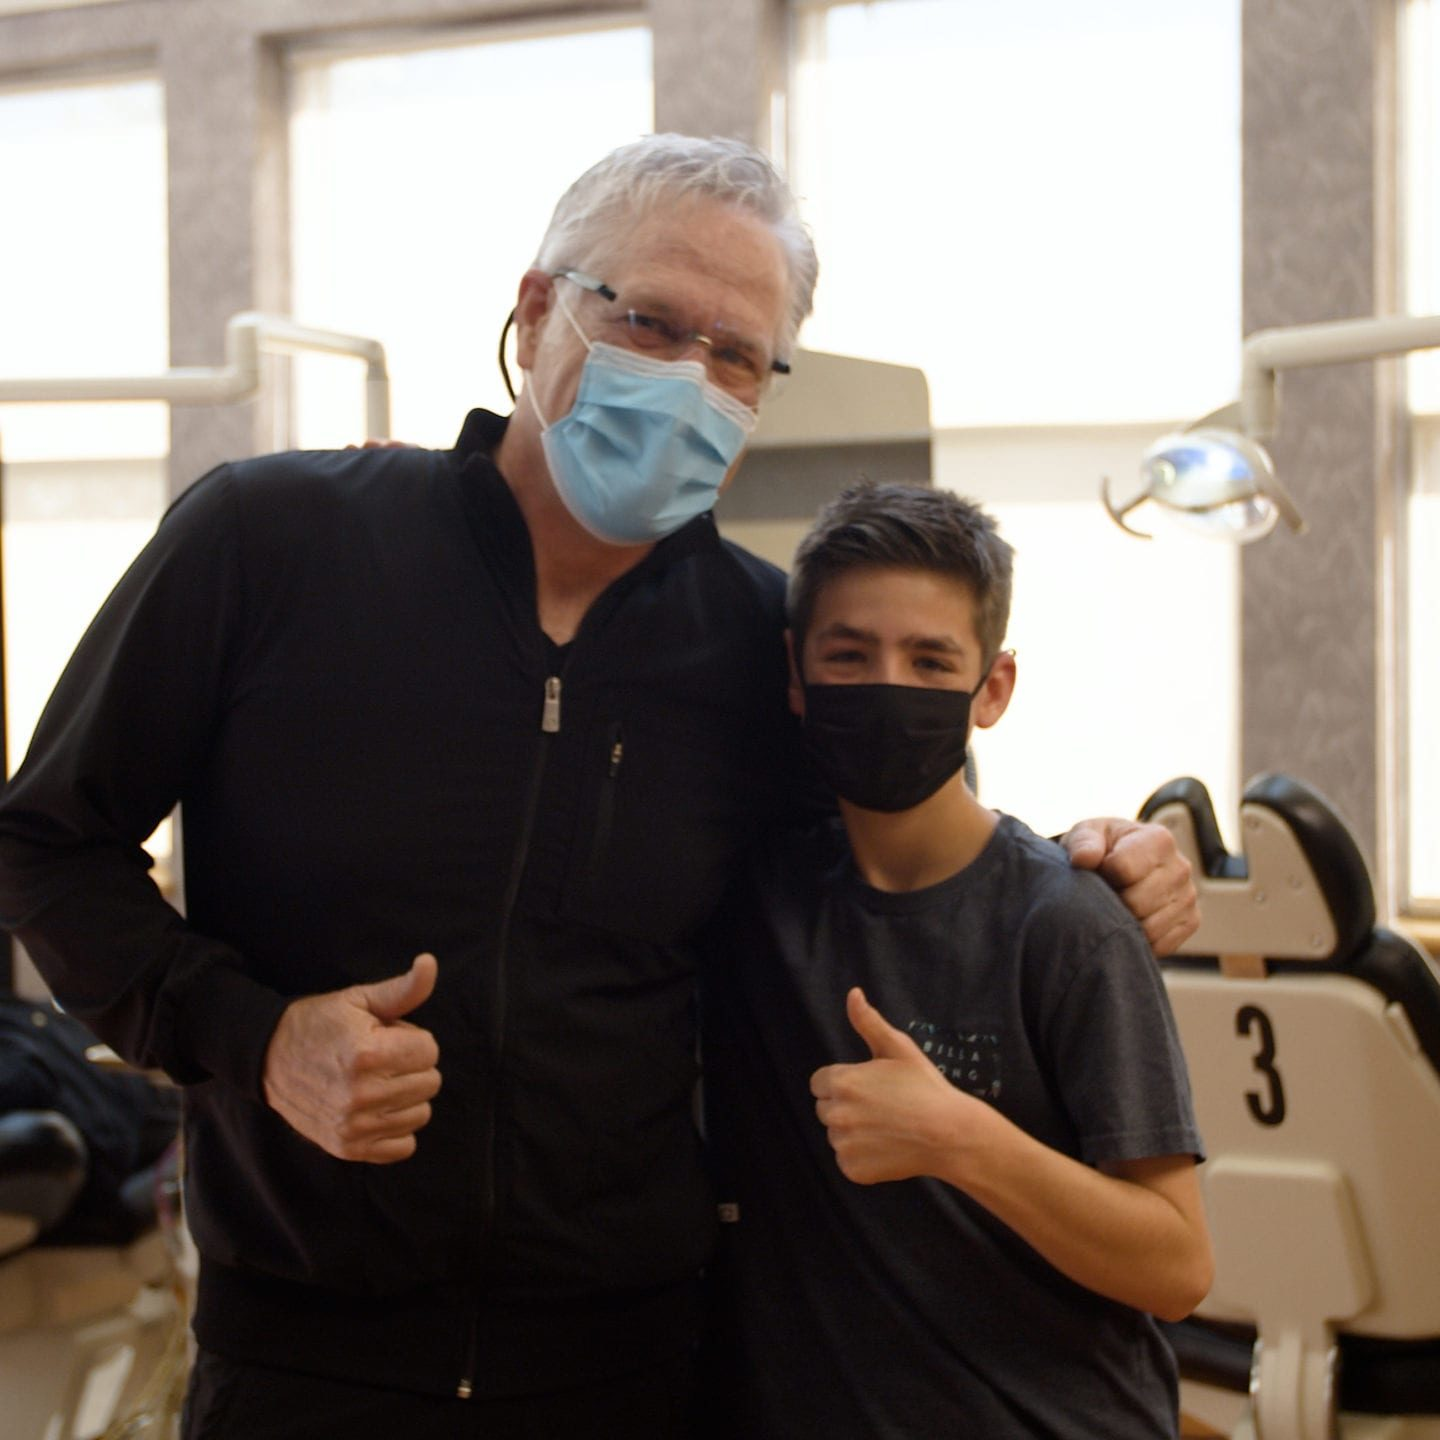 Dr. Roeder and patient giving thumbs up